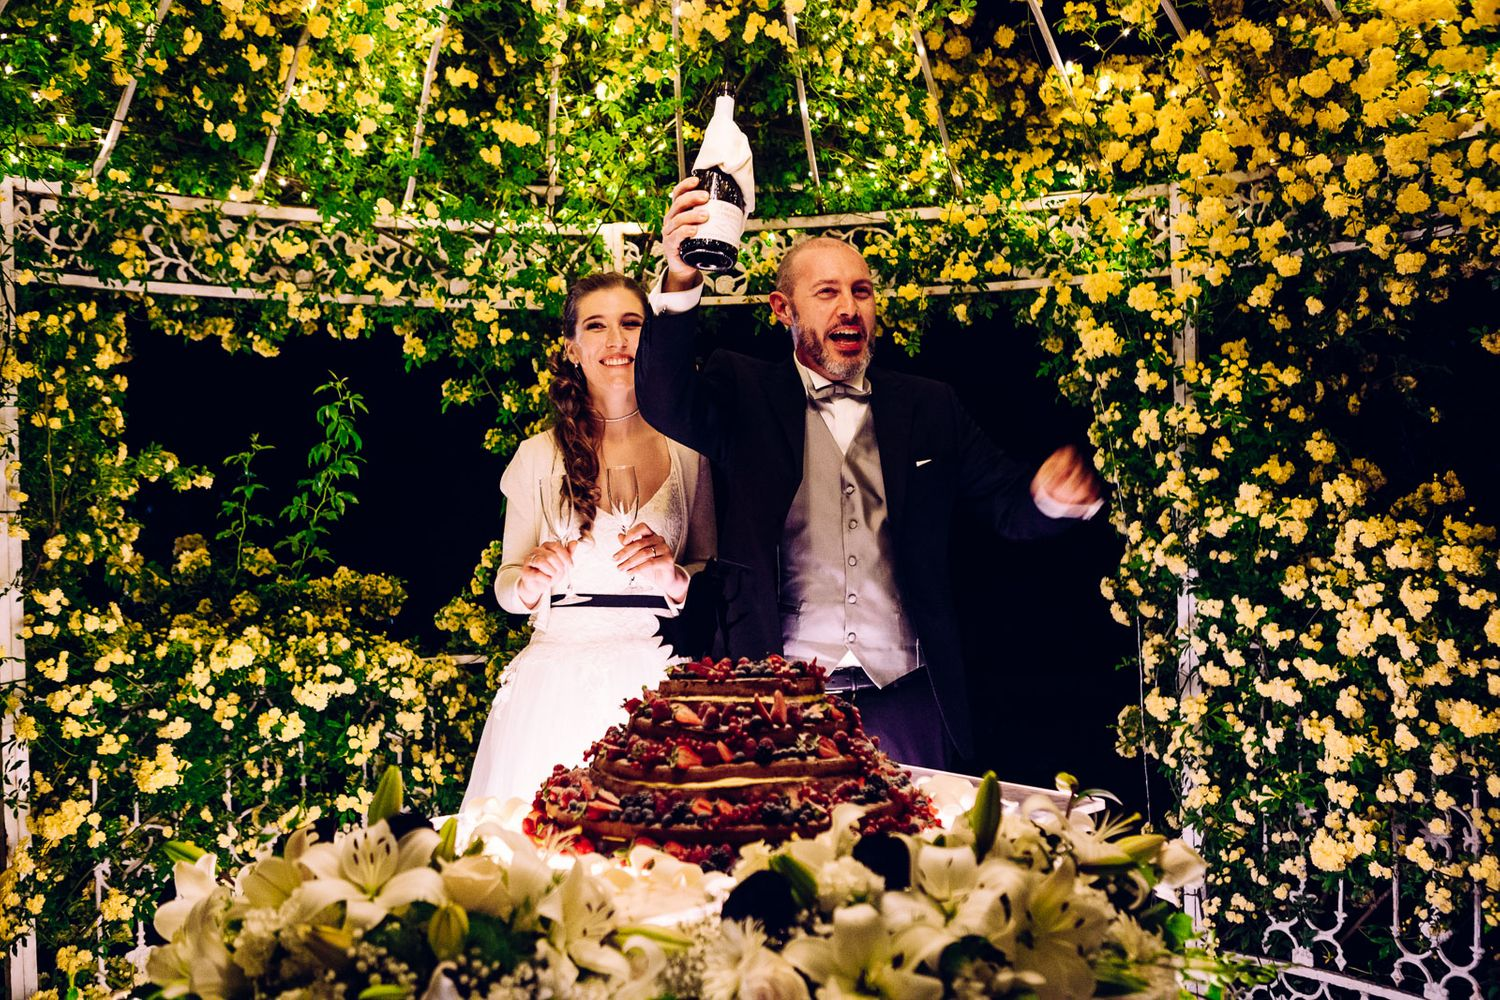 toasting and cutting the cake in Italy wedding by Tuscany based wedding photographer Elizabeth Armitage